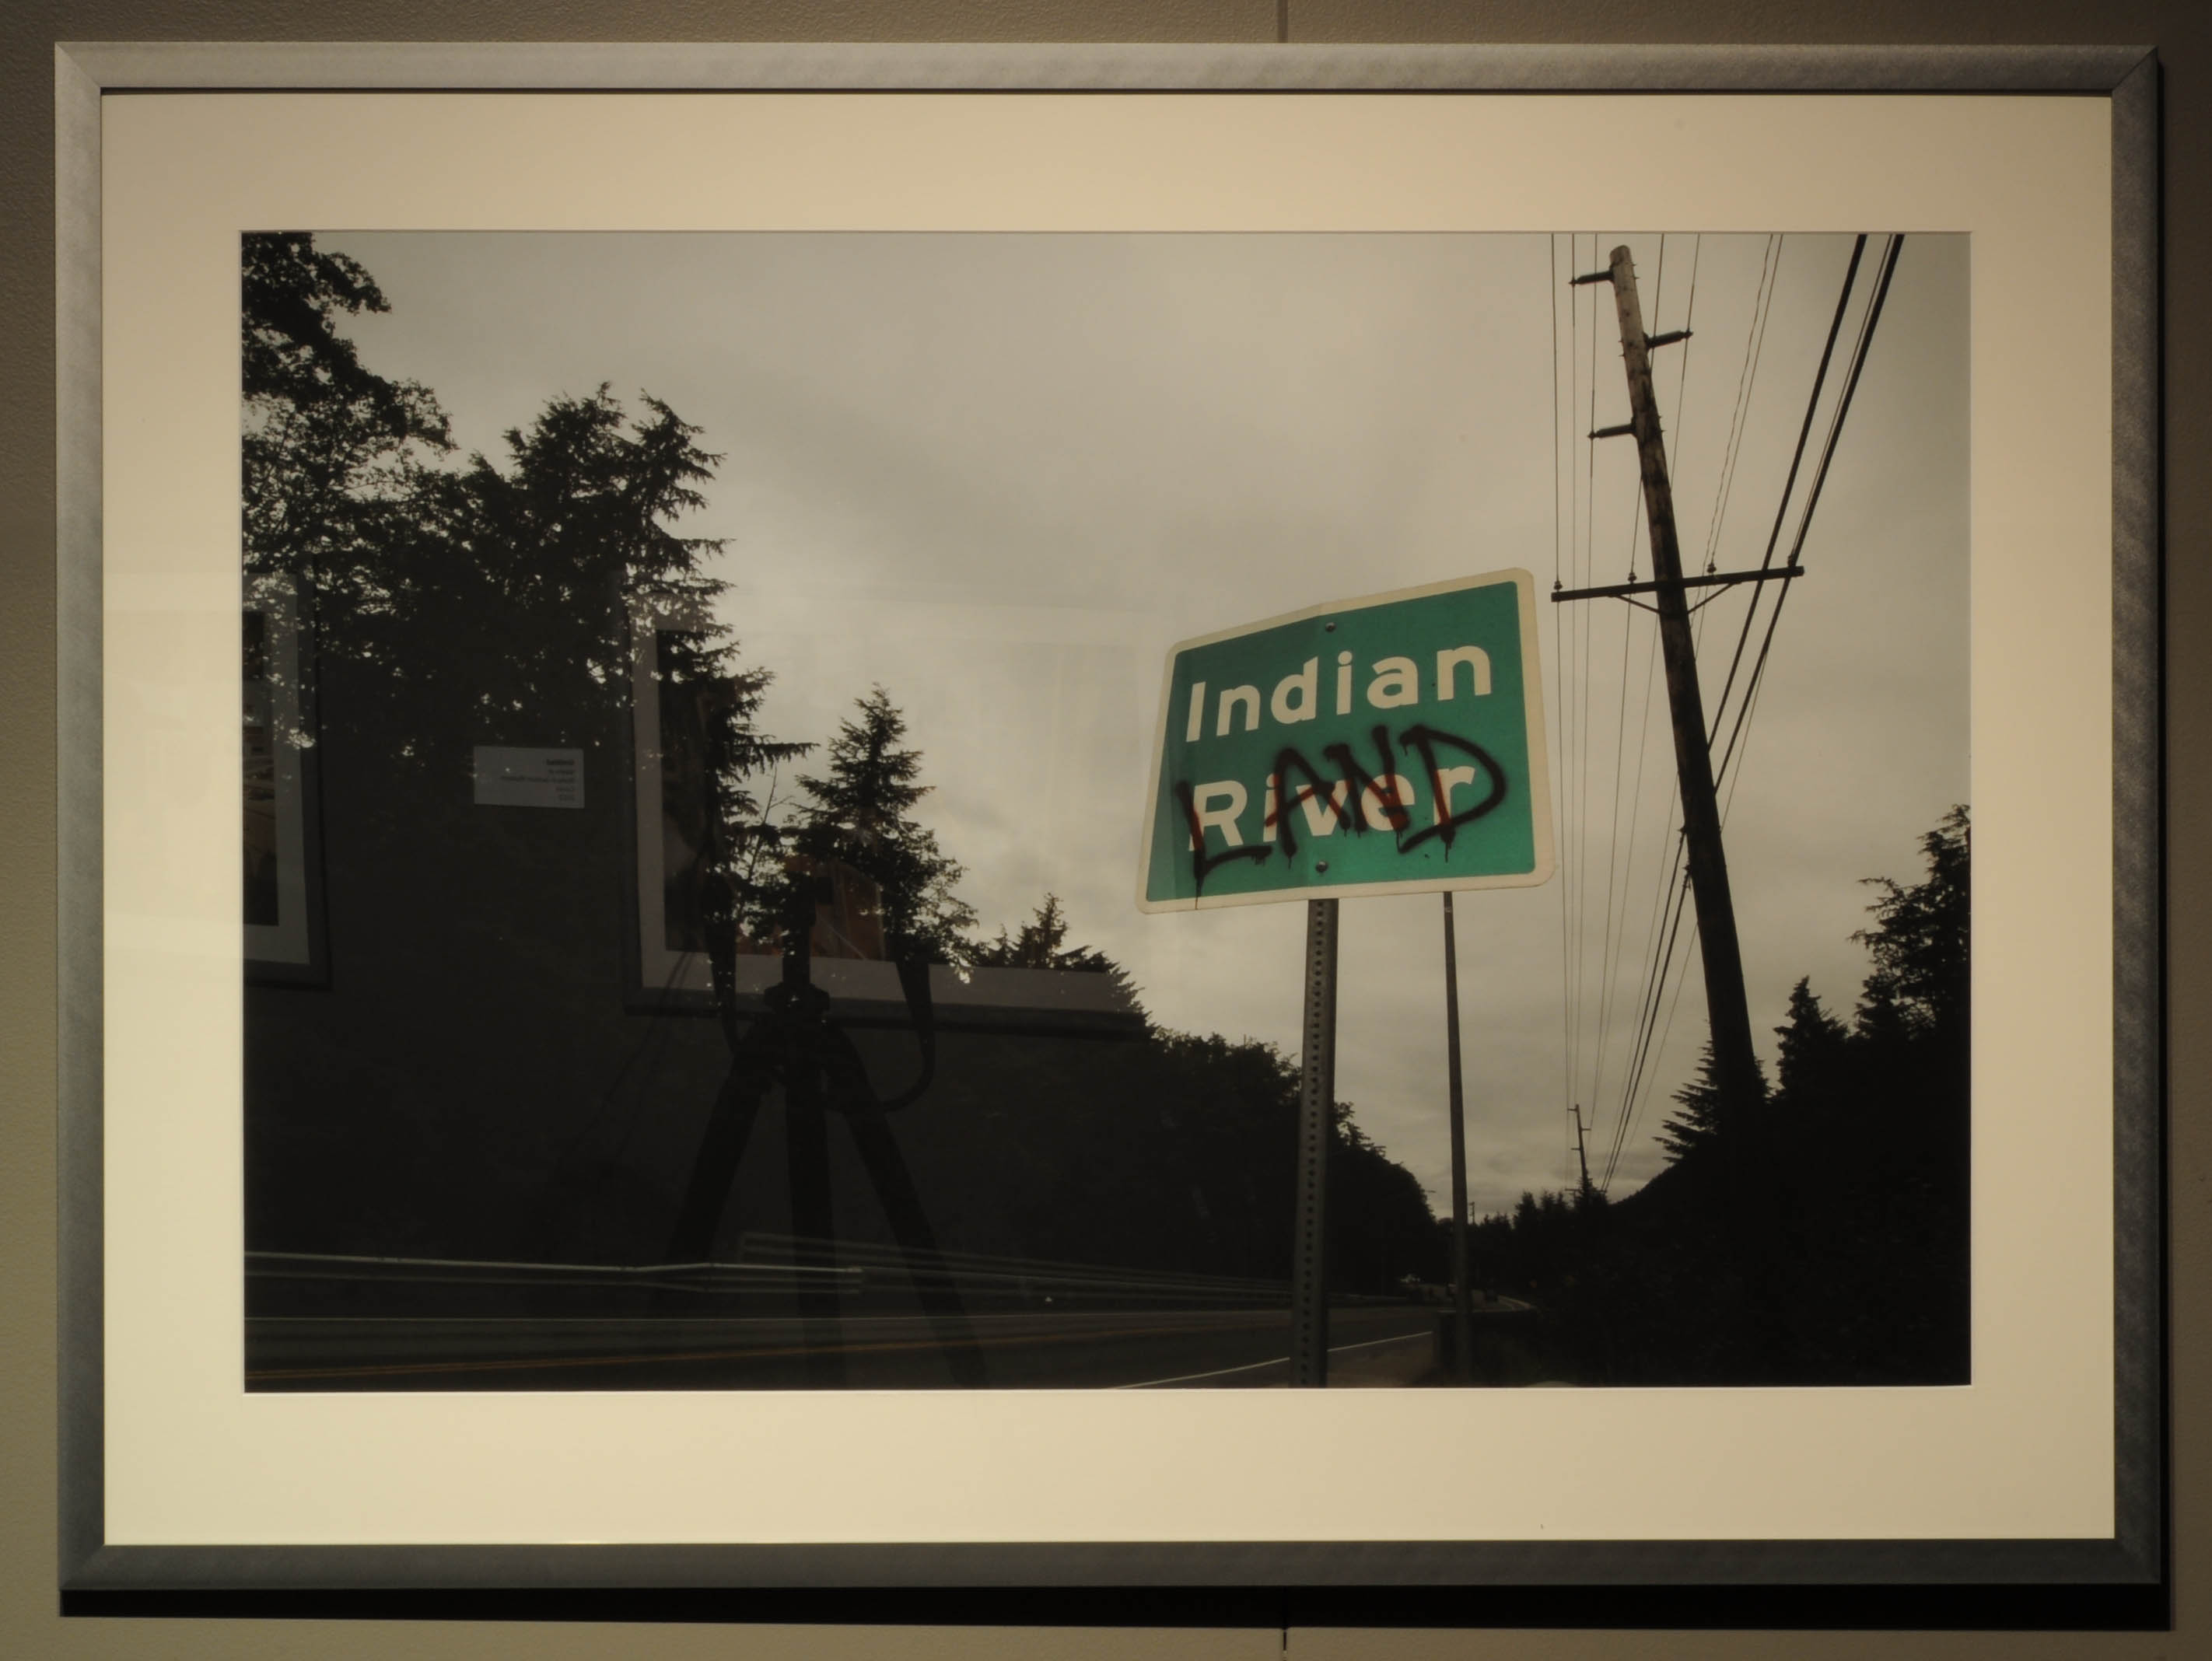 Indian Land road sign